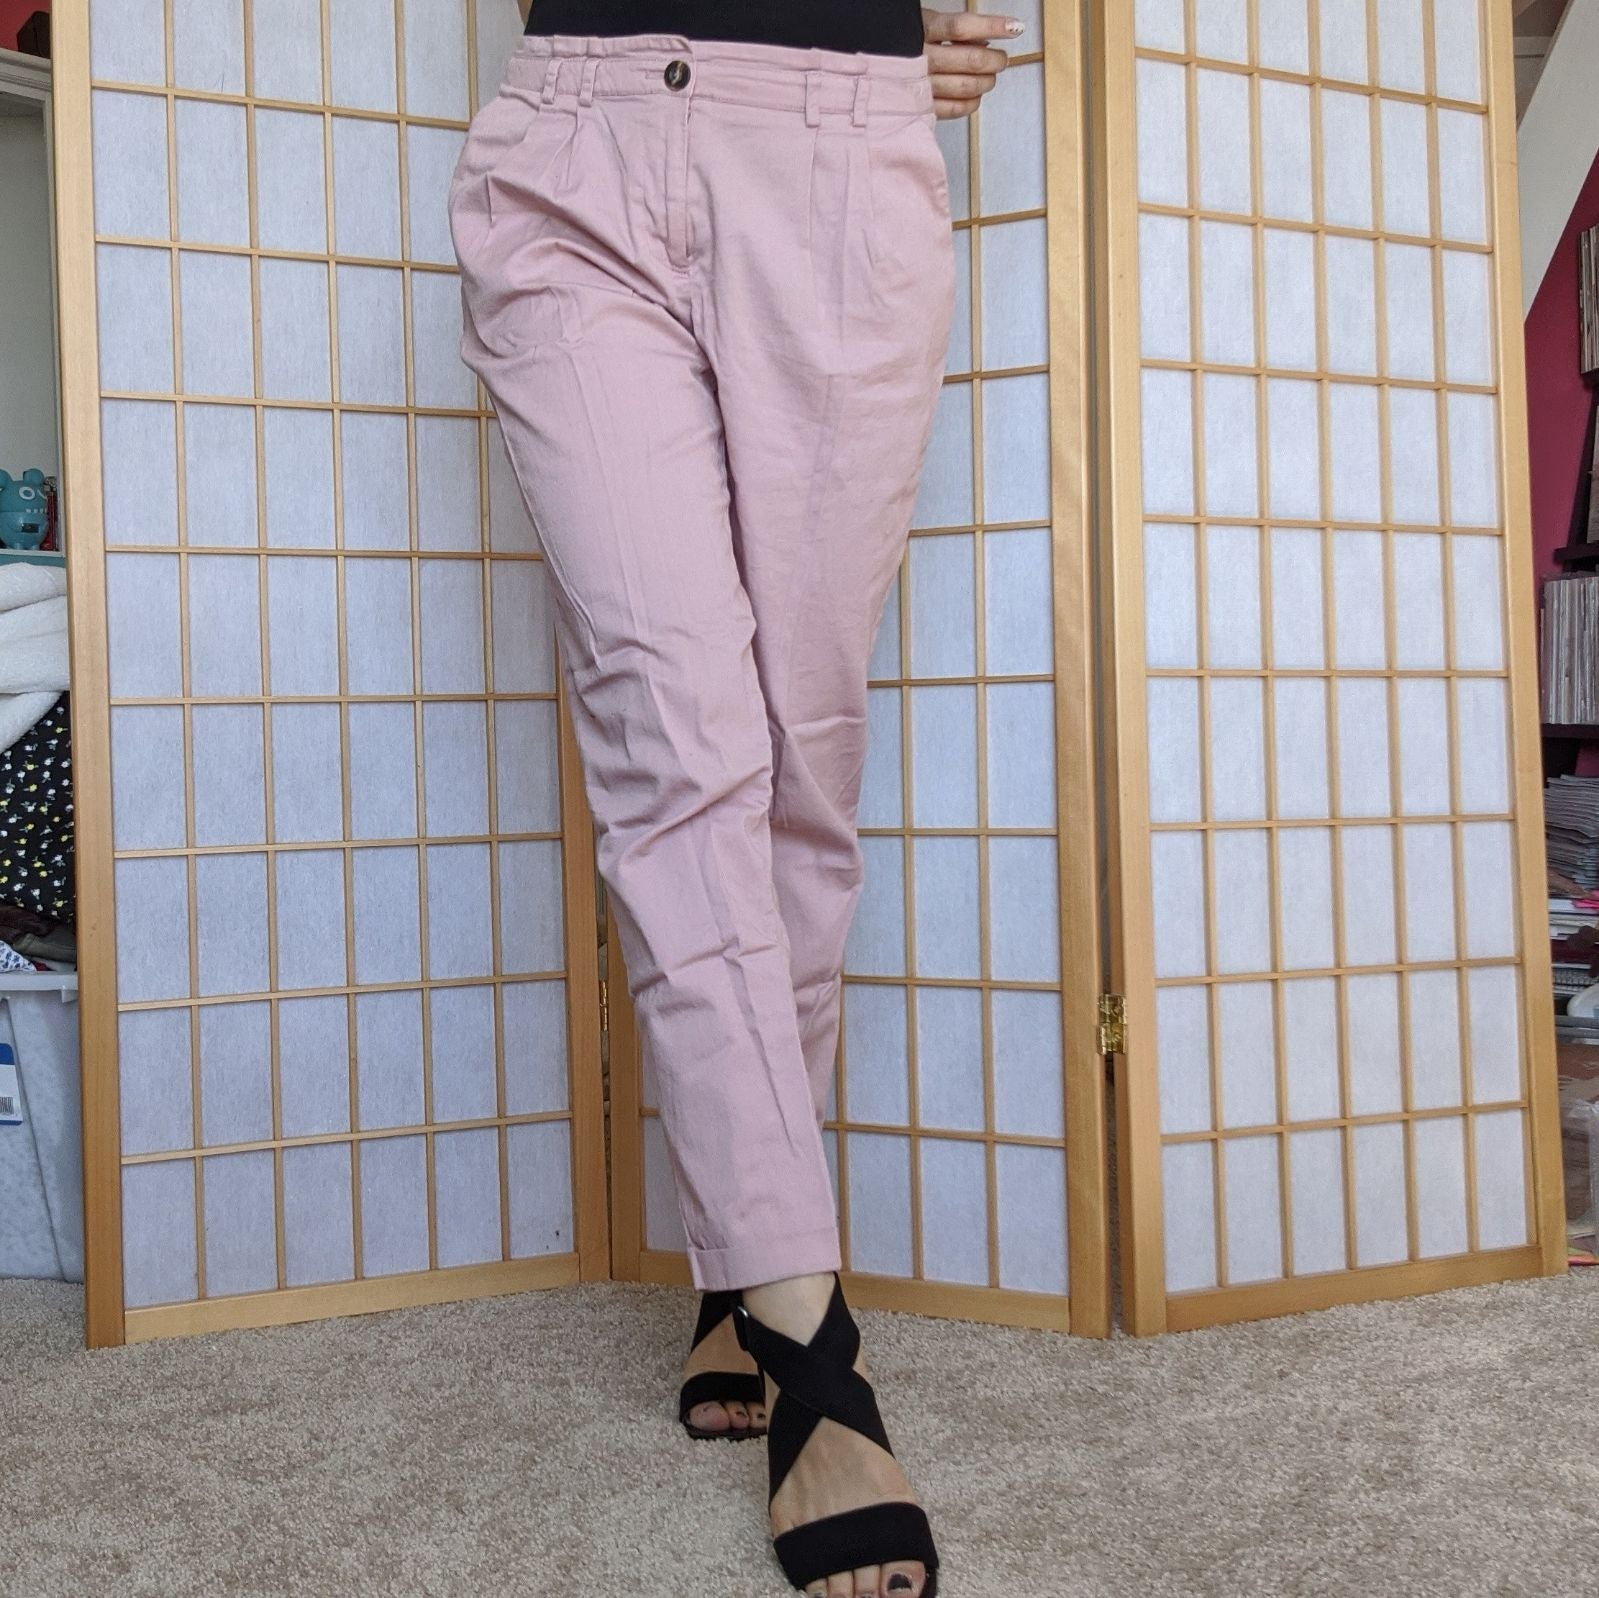 Blush Pink pleated pants